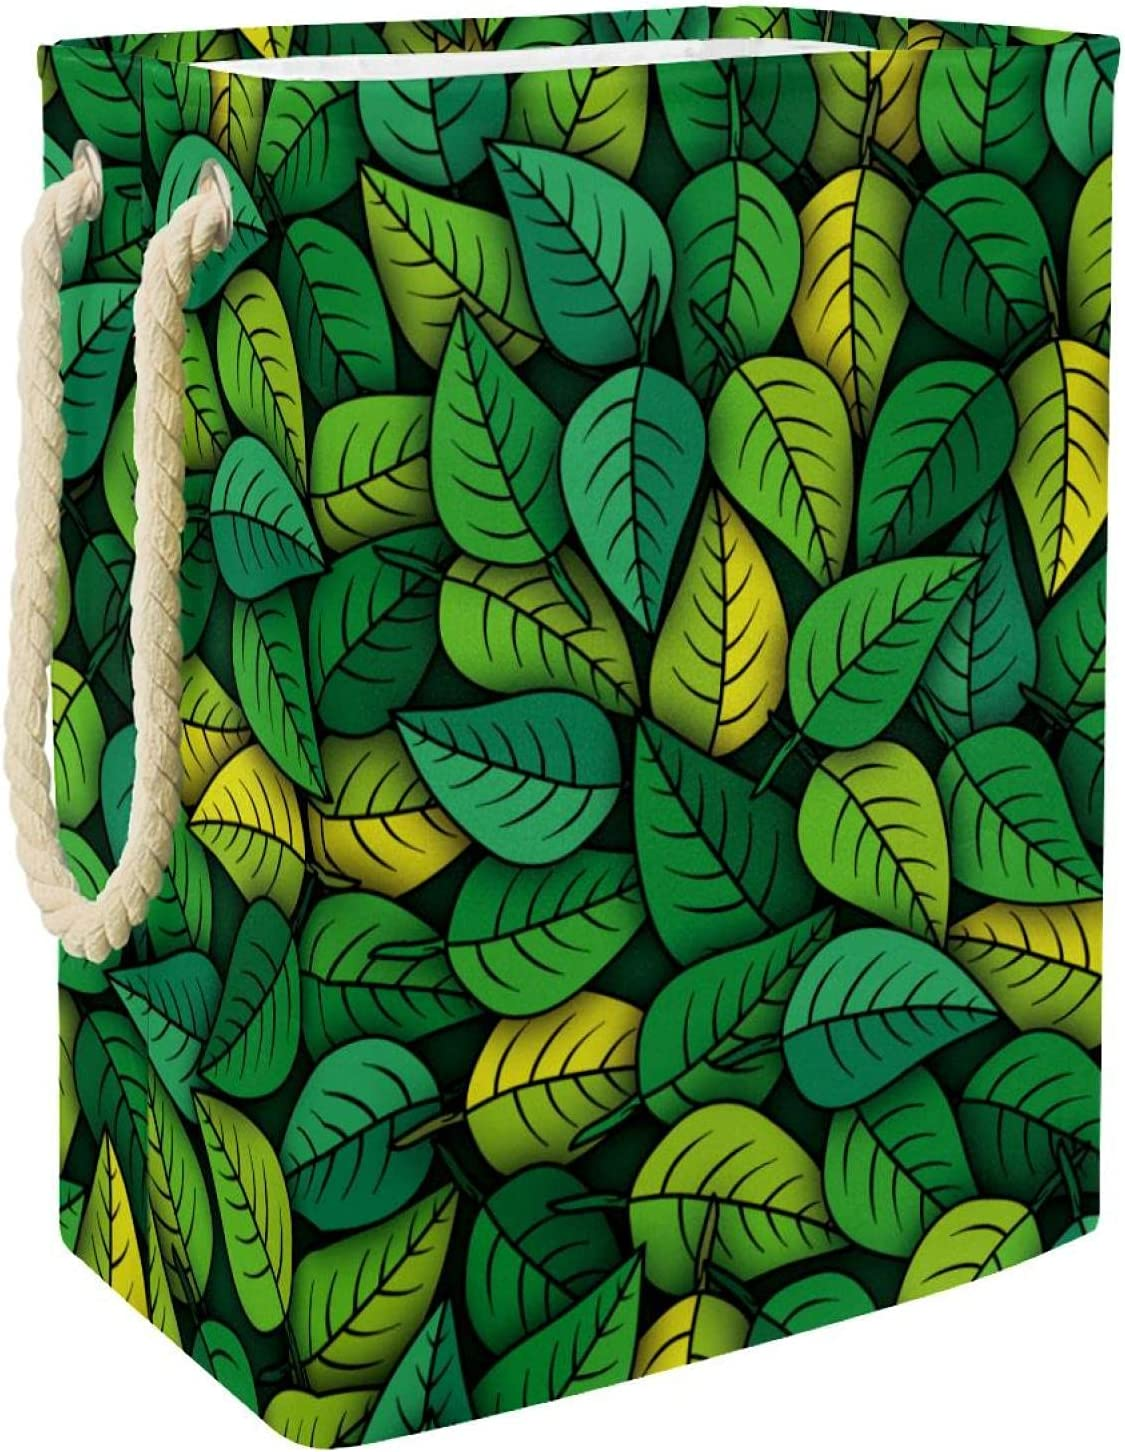 Laundry Hamper Green Leaves Seamless Pattern Max 76% OFF OFFer Linen Laun Foldable